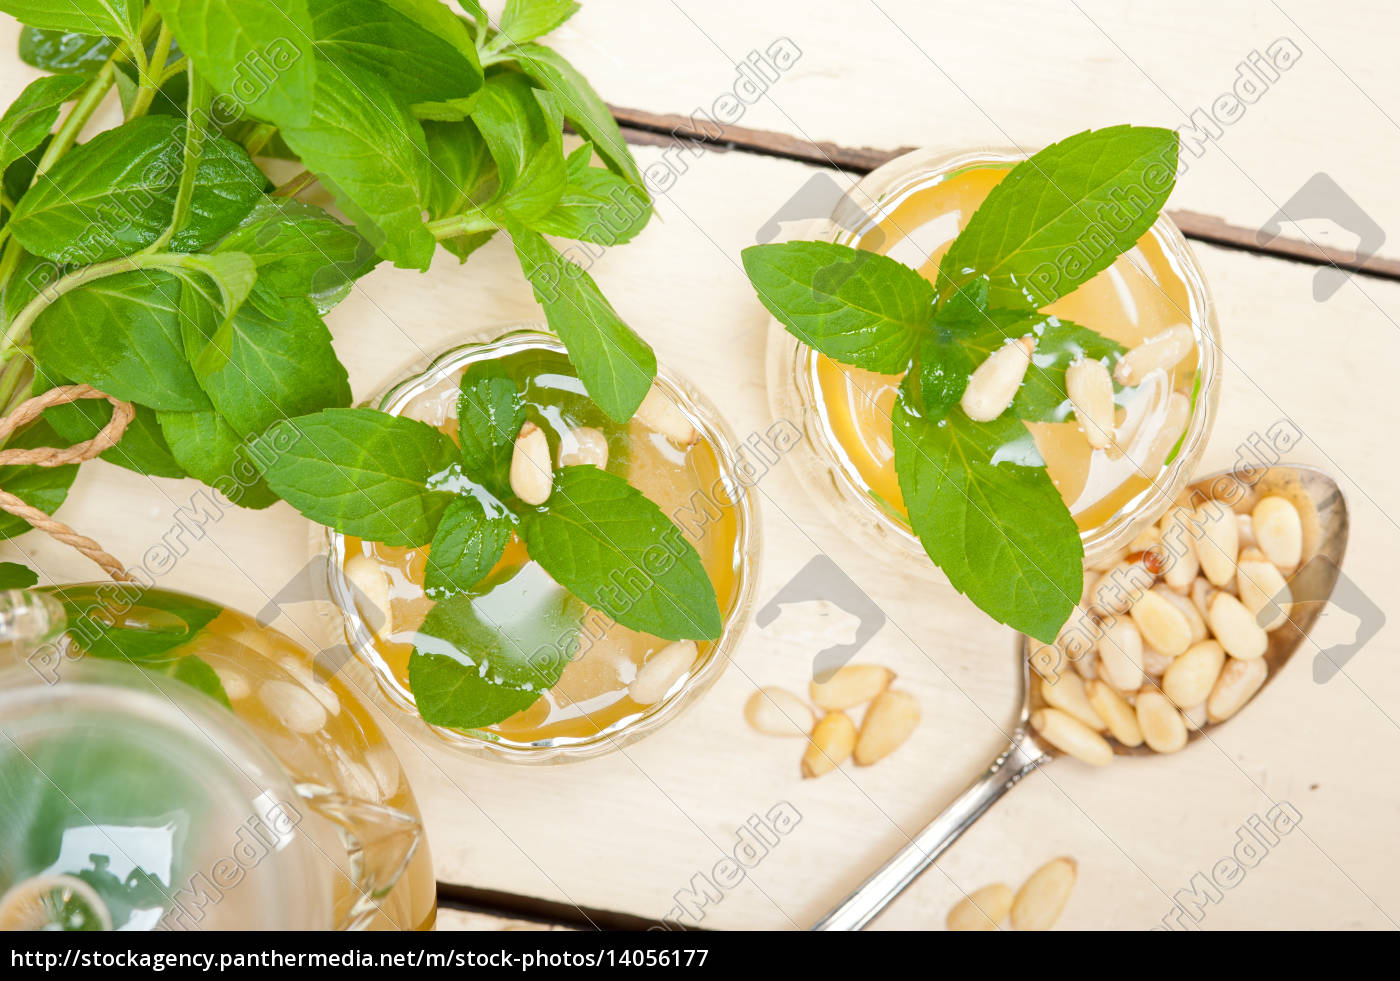 arab, traditional, mint, and, pine, nuts - 14056177